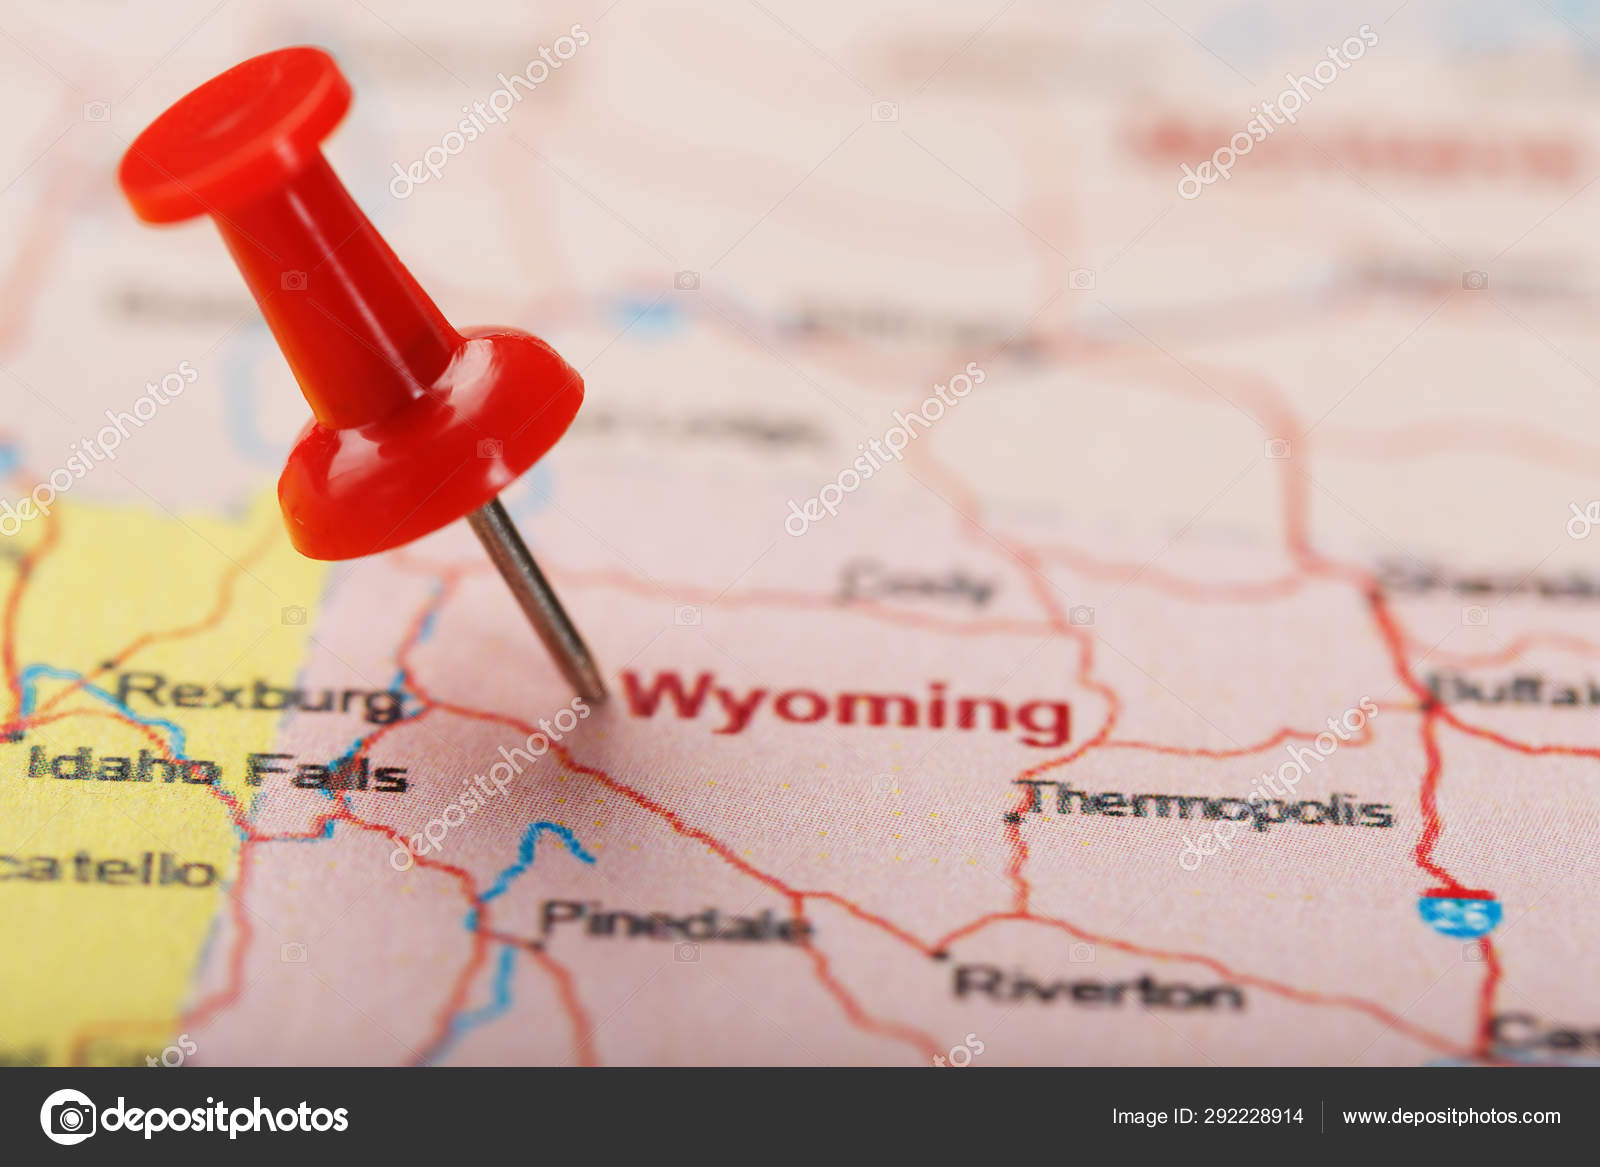 Red clerical needle on a map of USA, Wyoming and the capital ...